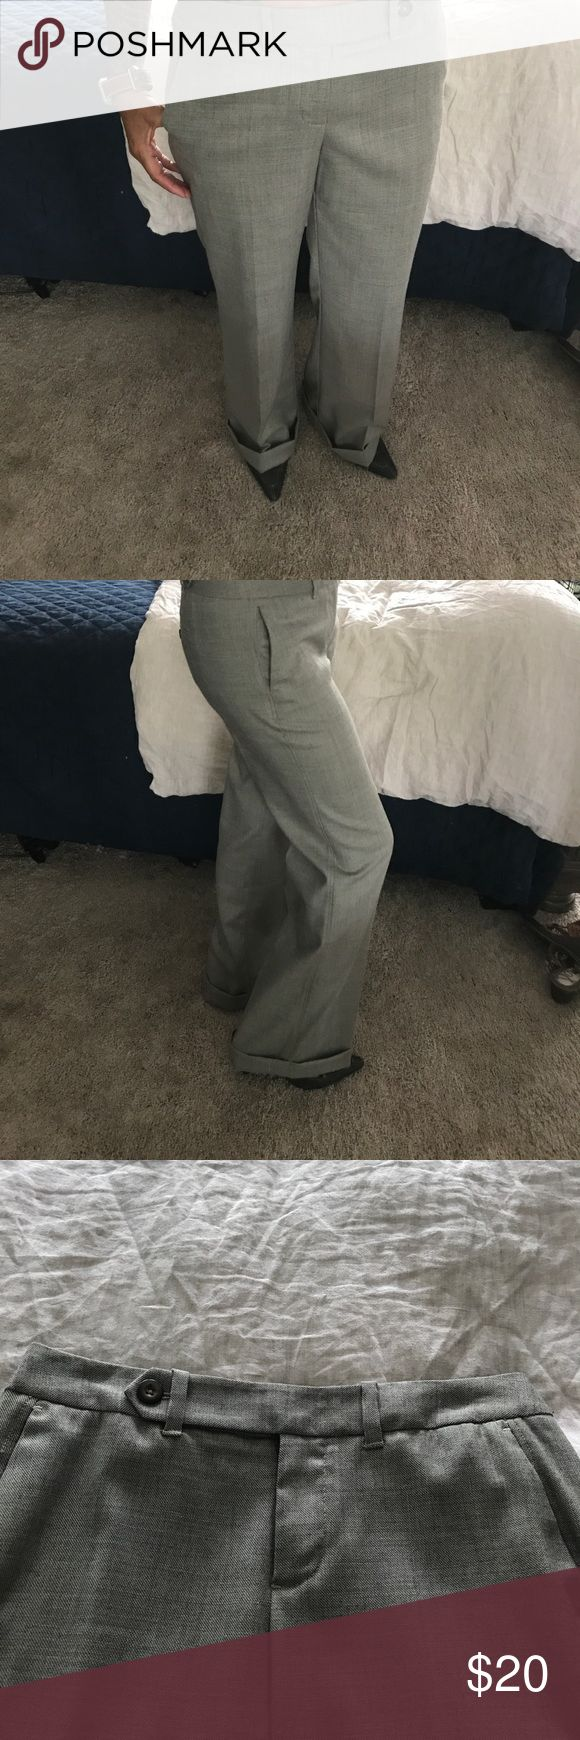 Gap trousers. Great tweed look trousers  with cuffed leg. Love the button details. Inseam is 31 inches and waist flat is 15inches. GAP Pants Trousers